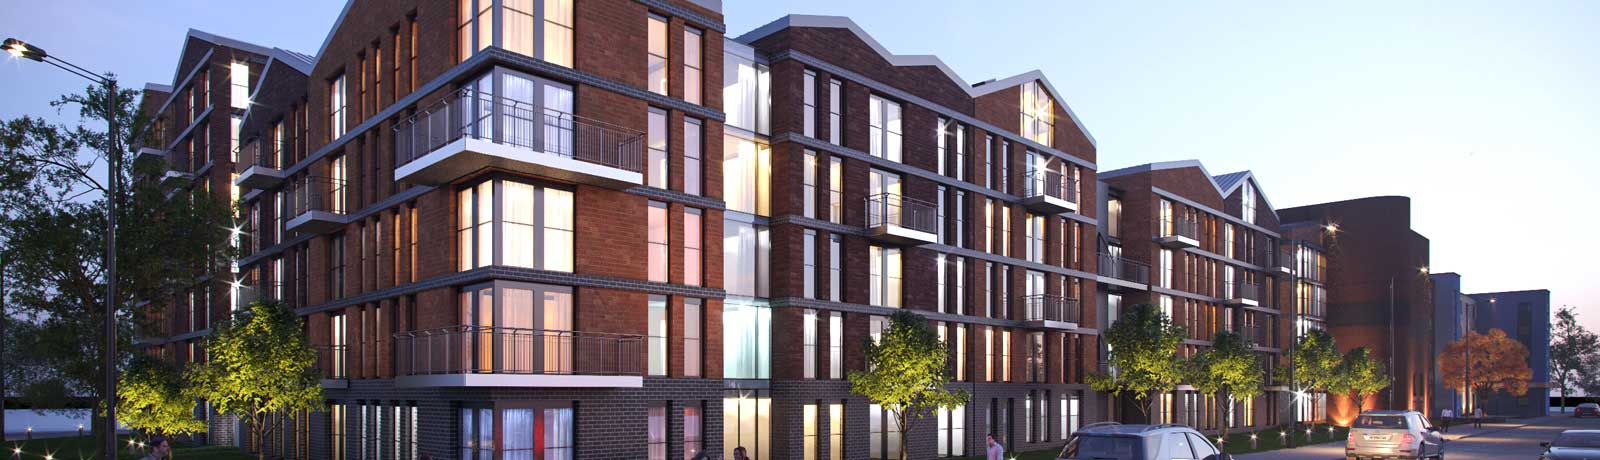 LIFE AT ARDEN GATE !Introducing a collection of luxury contemporary apartments in UK's vibrant second city.